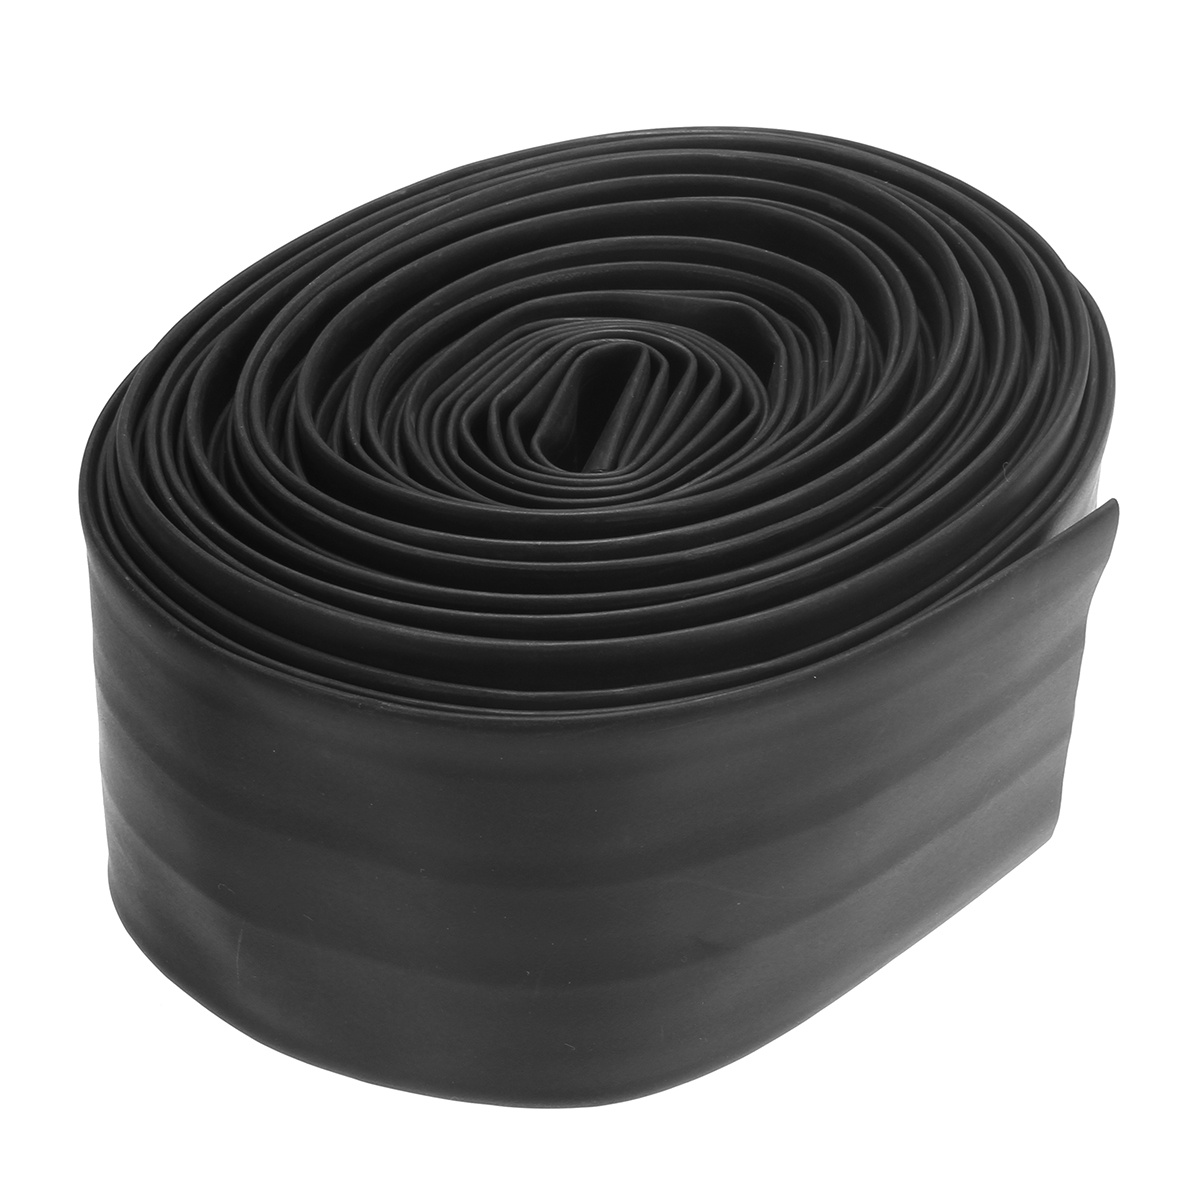 10m Black 21 Heat Shrink Tubing Tube Sleeve Wrap Wire Cable 15 20 Harness Sleeving 13943c67 0cc4 4a1d Ba06 Bd099664d844jpeg